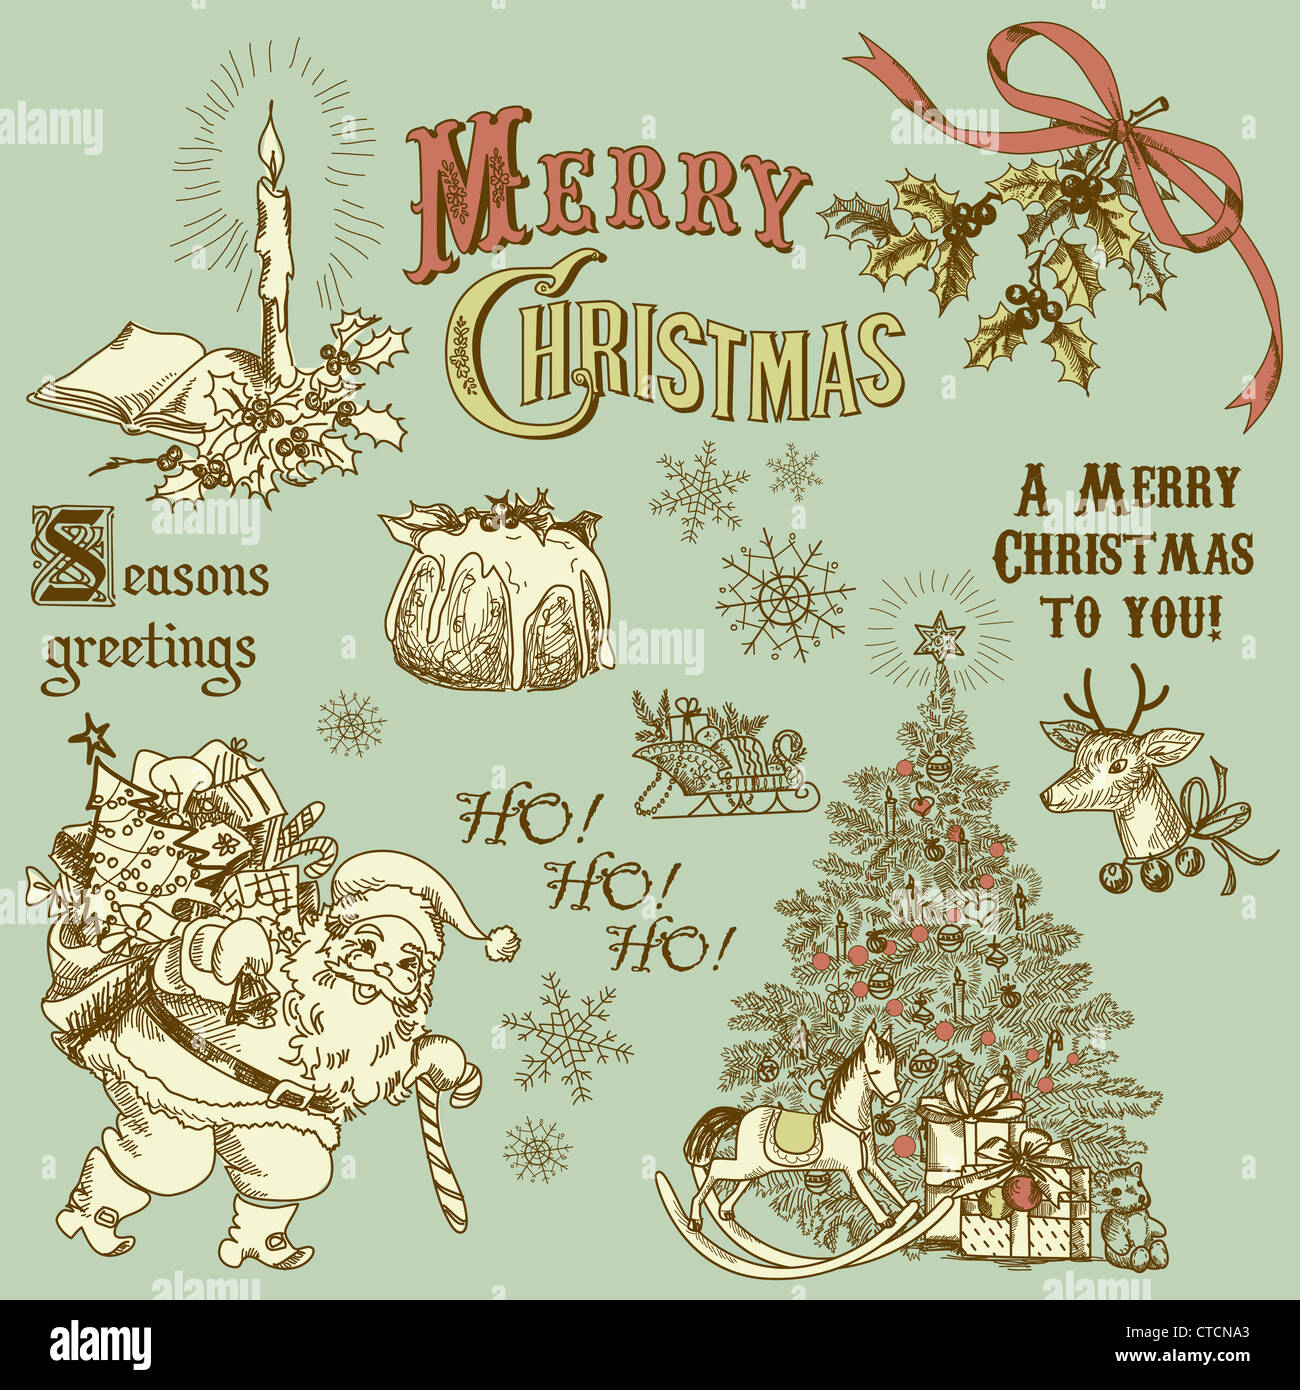 Vintage Christmas.Vintage Christmas Doodles Stock Photo 49452651 Alamy